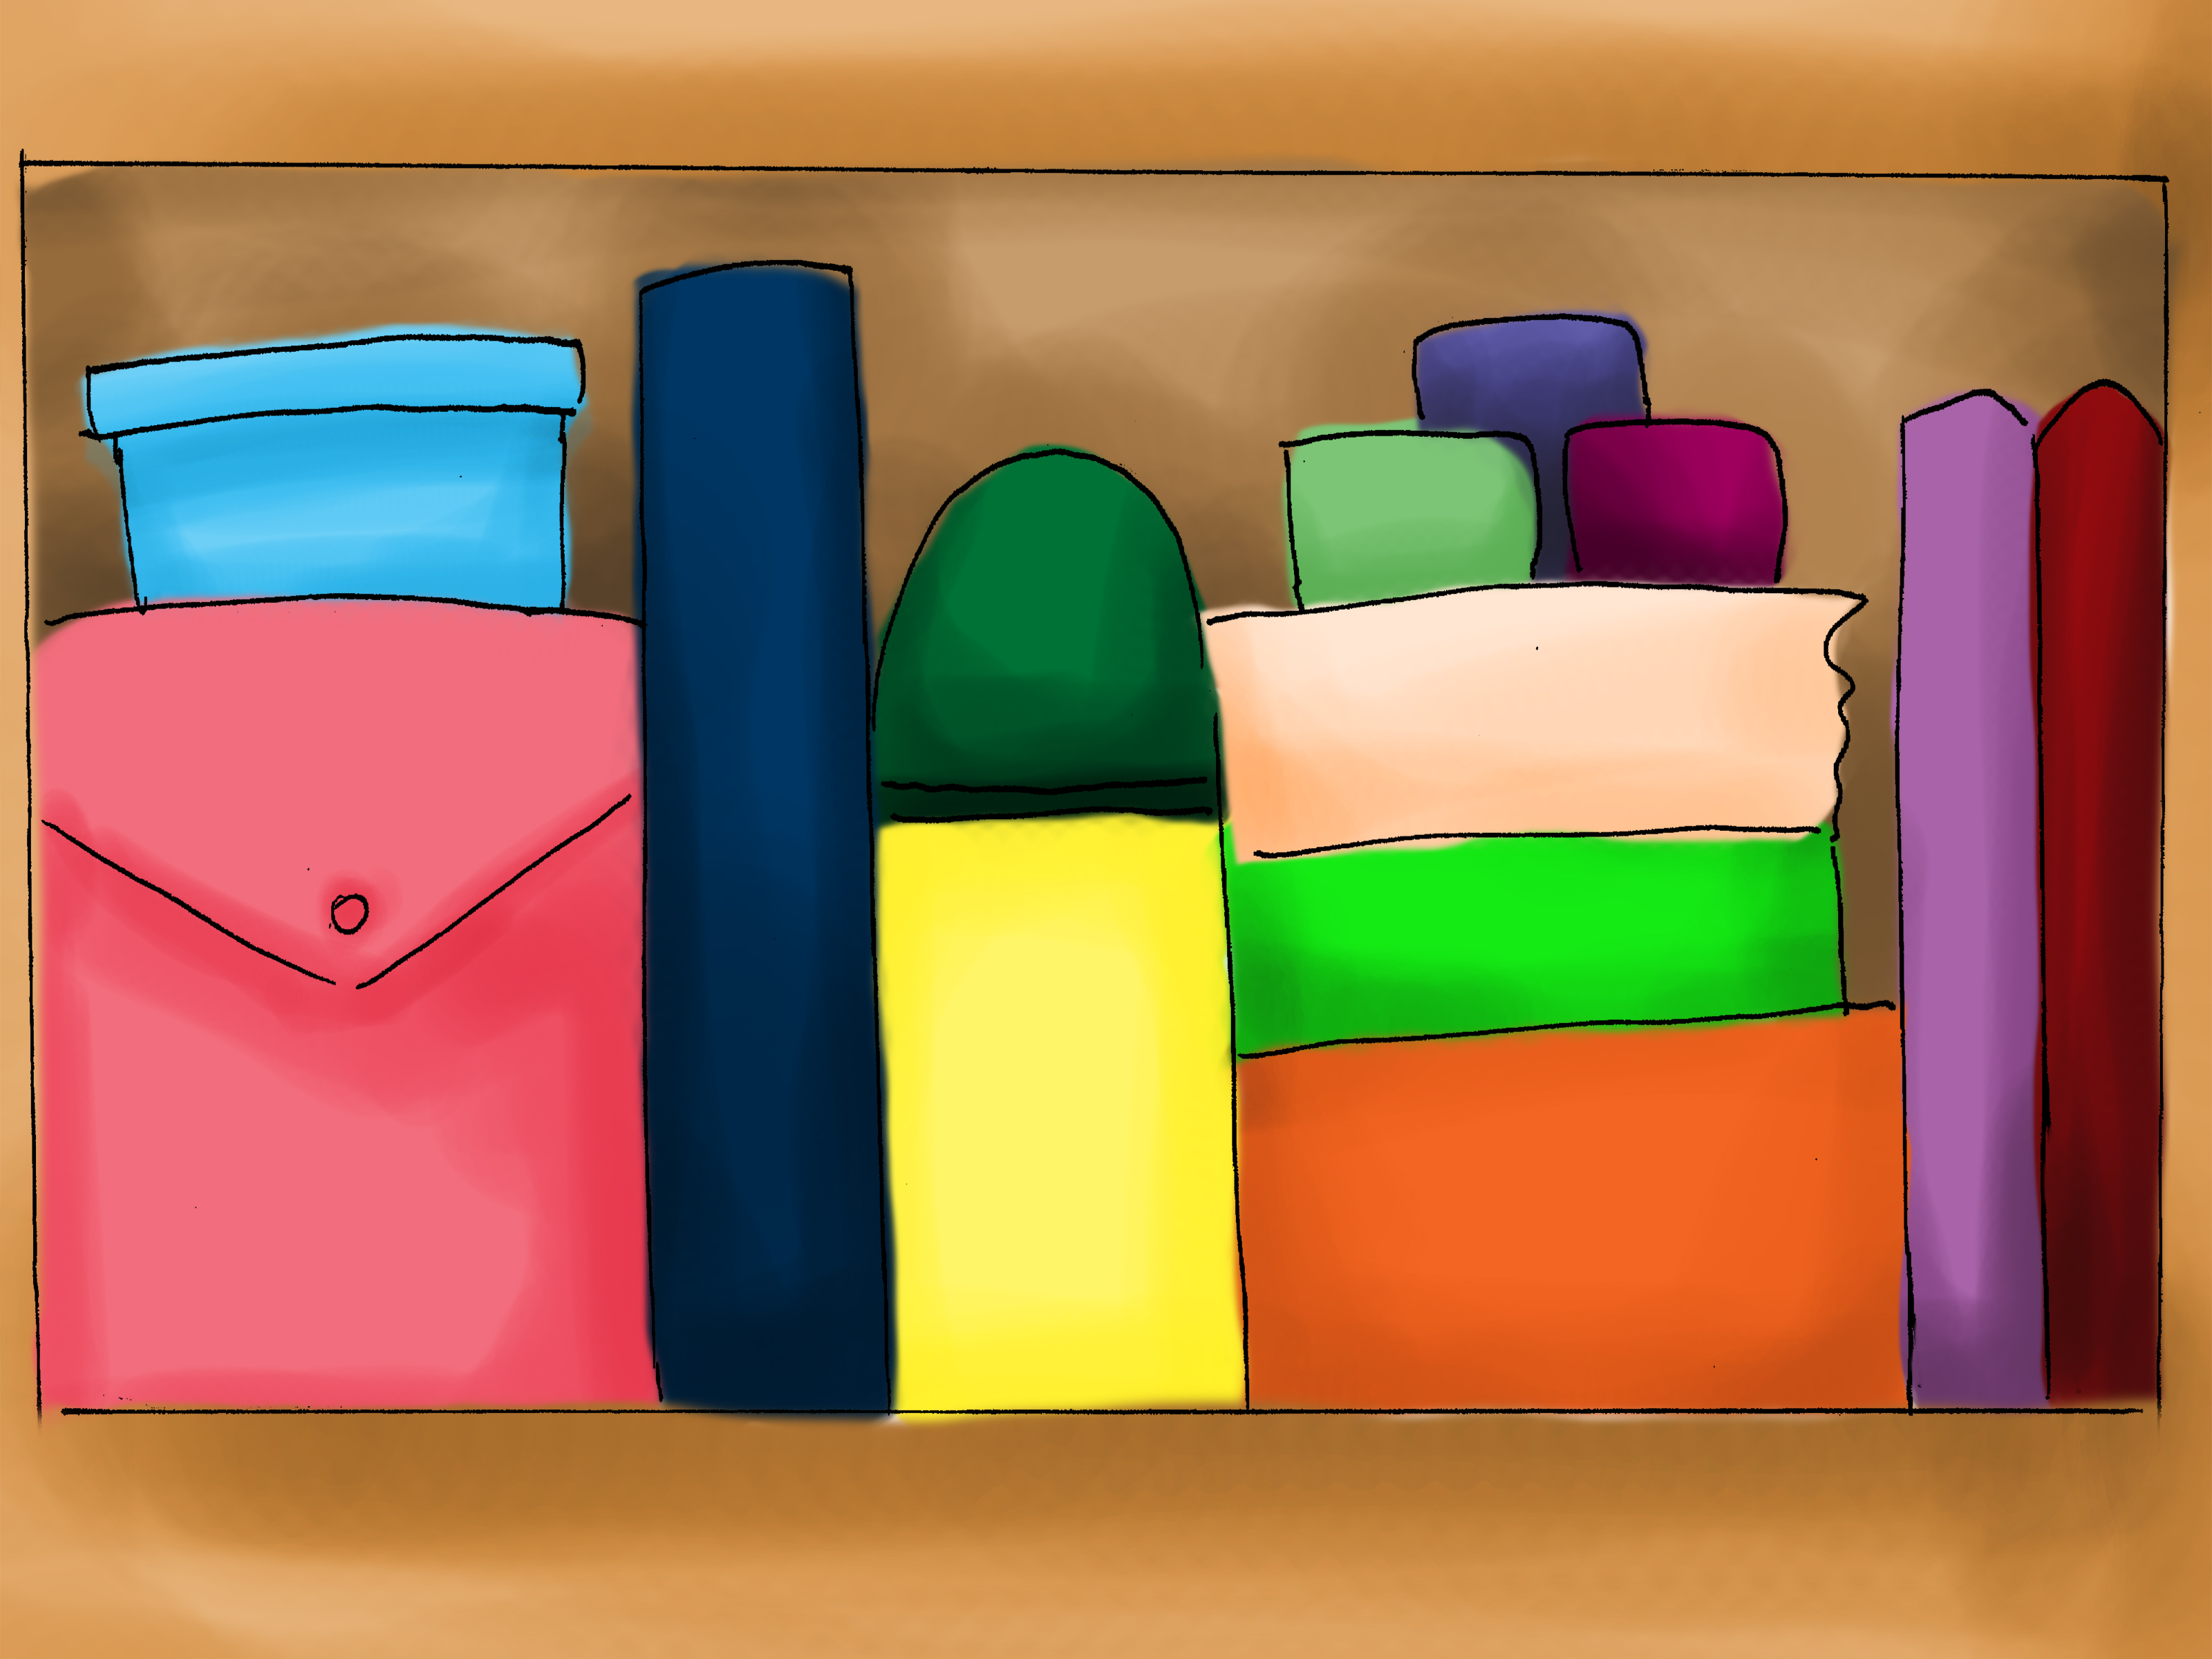 Free organizing home cliparts. Organization clipart neat